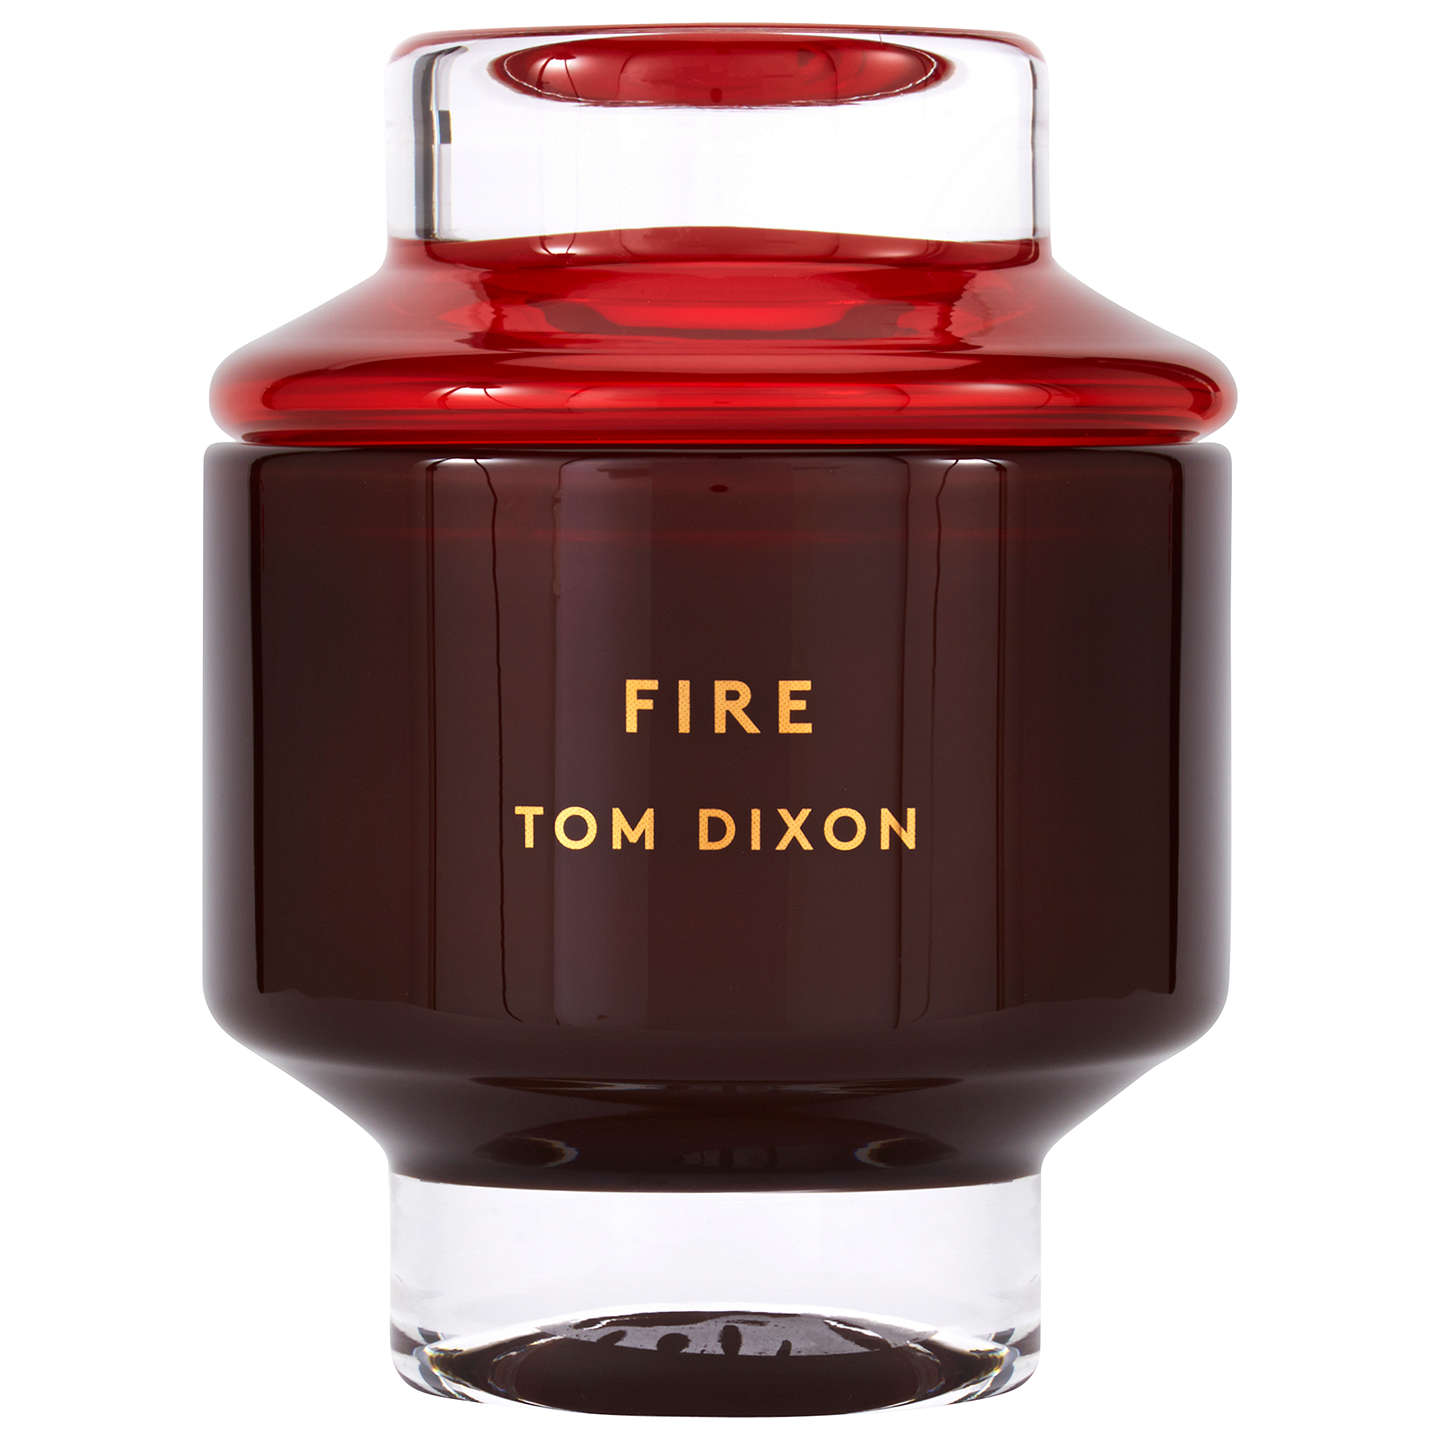 BuyTom Dixon Fire Scented Candle, Large Online at johnlewis.com